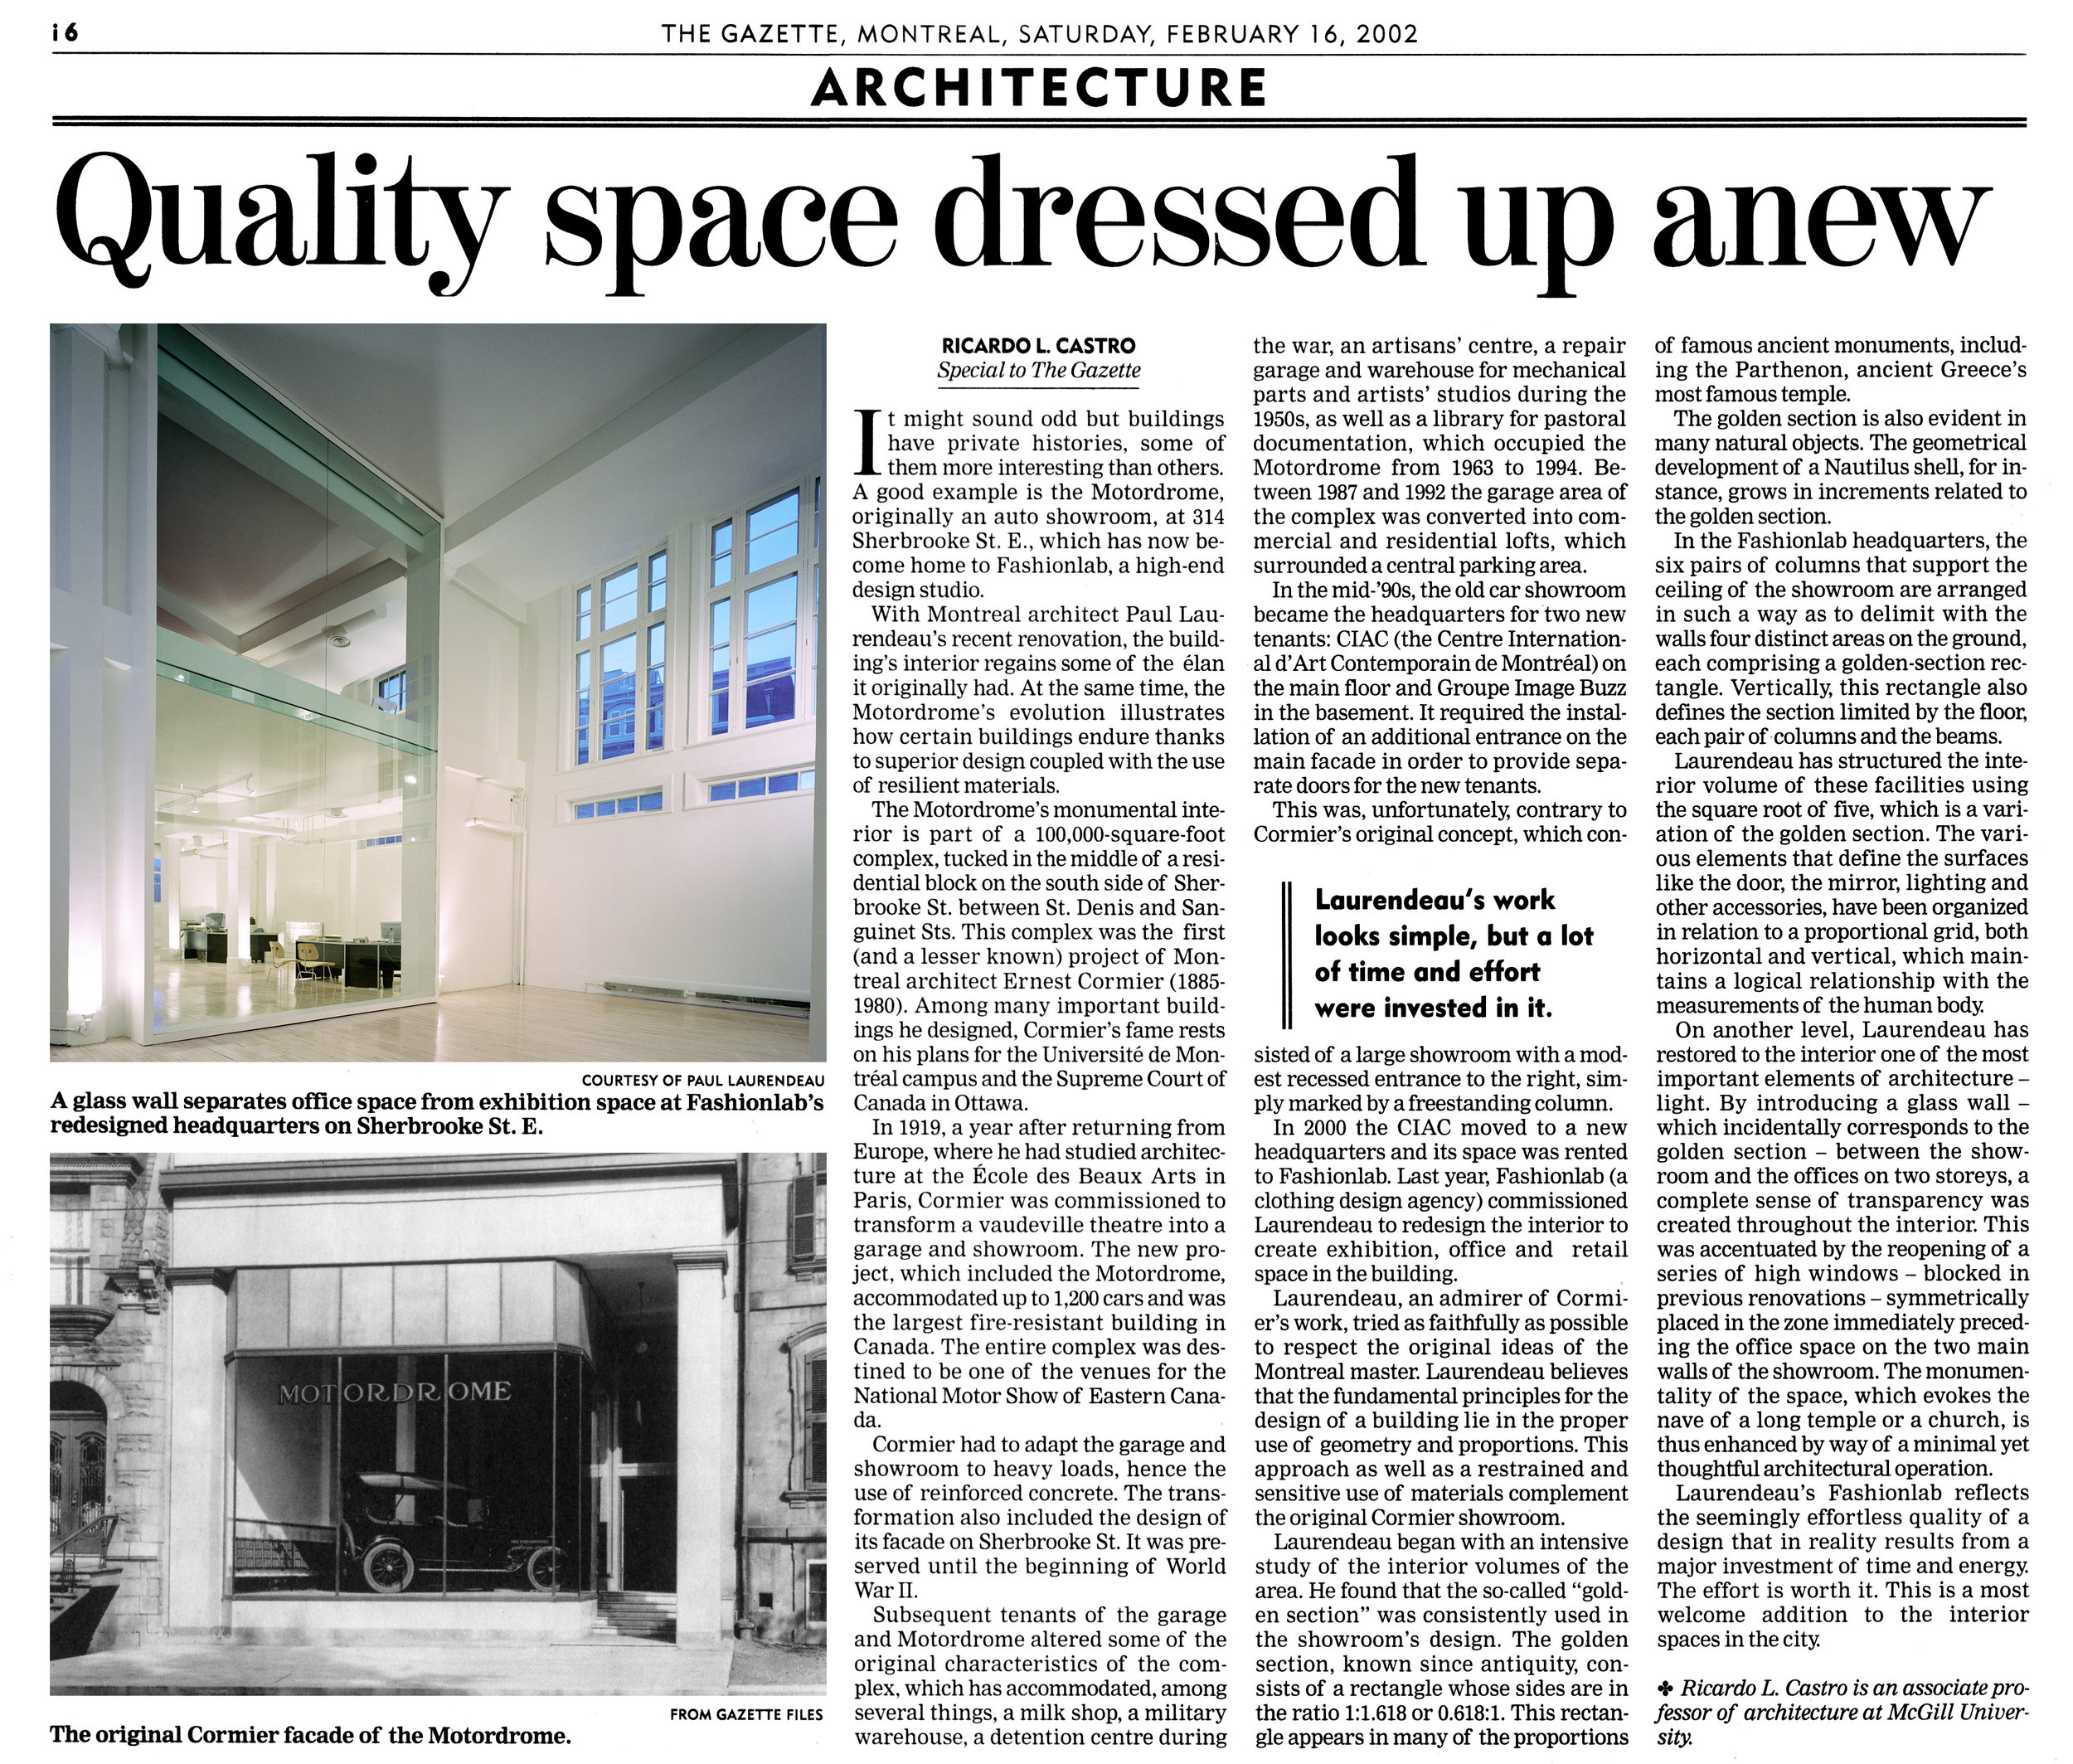 Quality Space Dressed Up Anew